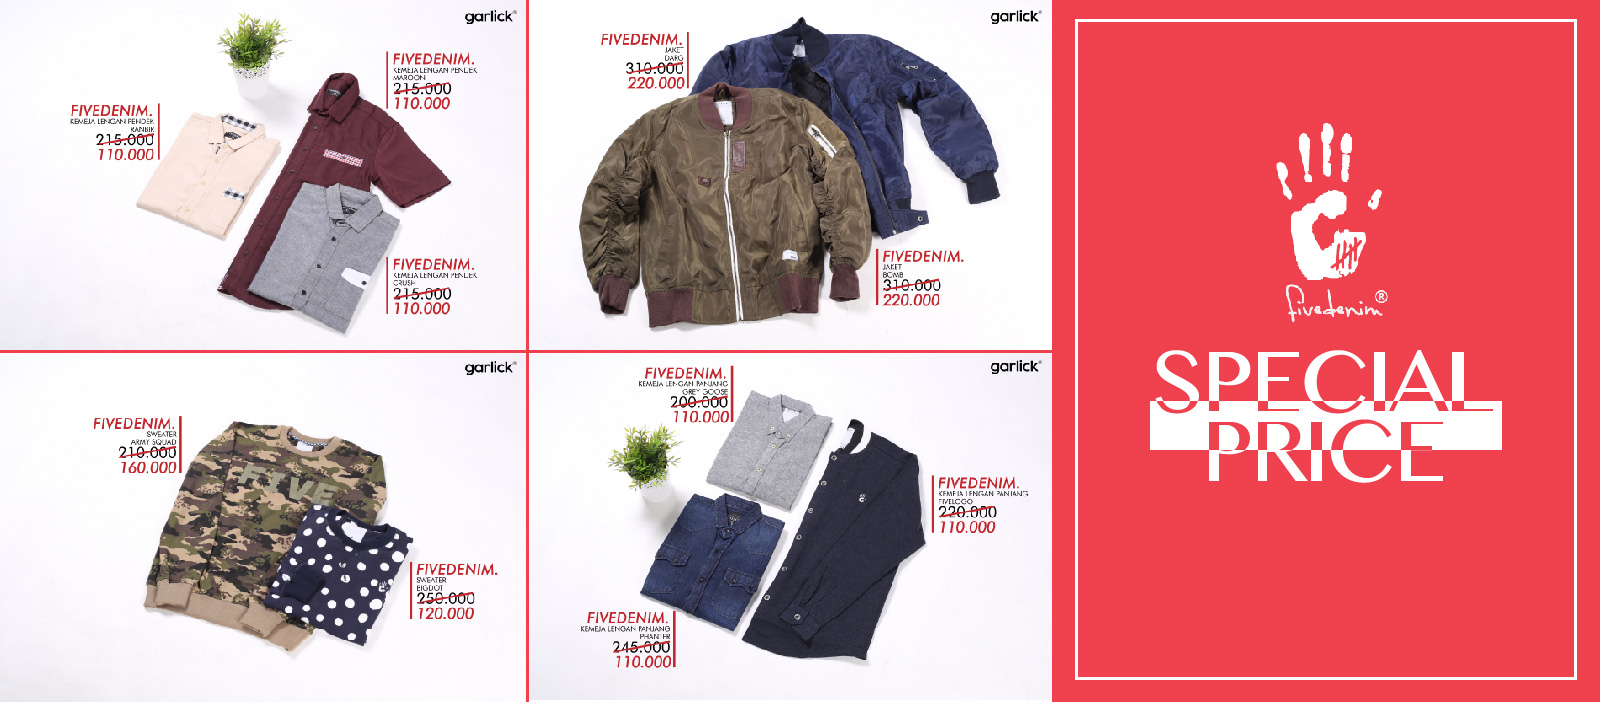 Special Price from FIVEDENIM